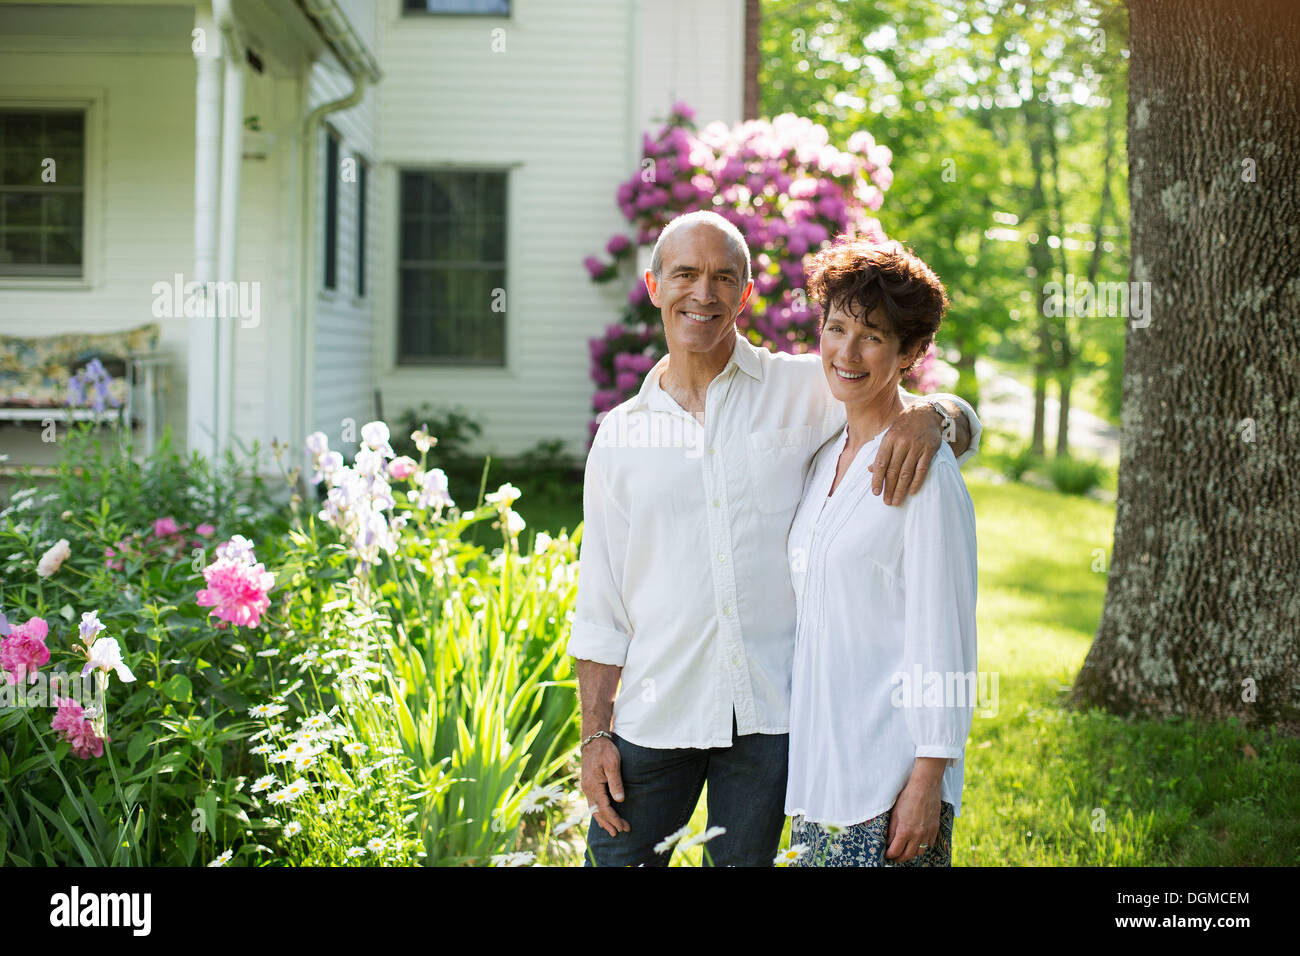 Organic farm. Summer party. A mature couple in white shirts standing together among the flowers. - Stock Image